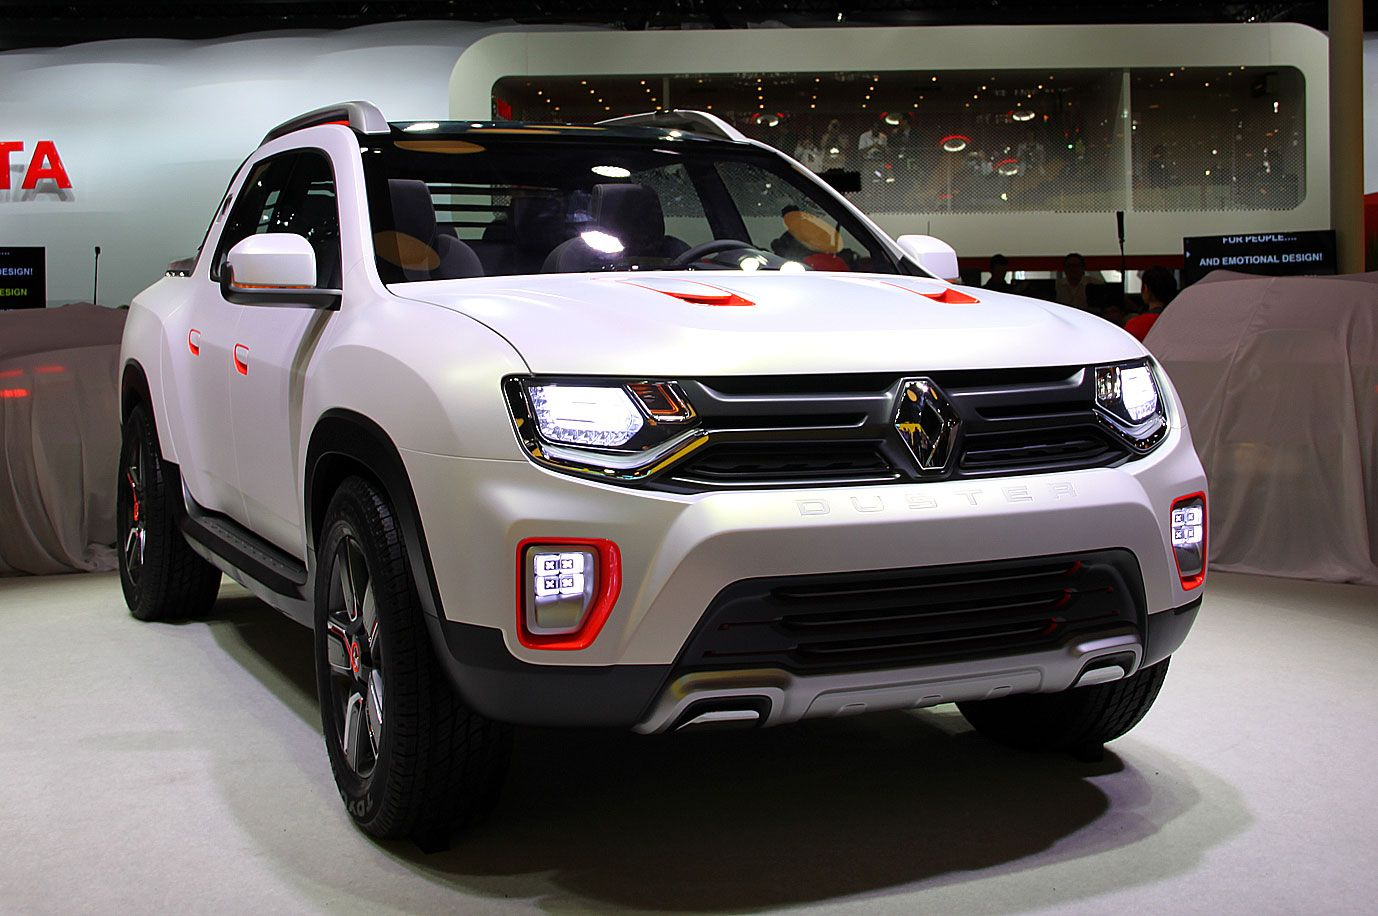 Download the latest 2014 renault duster hd wallpaper pictures from wallpapers111 com cars wallpapers pinterest dusters car wallpapers and cars